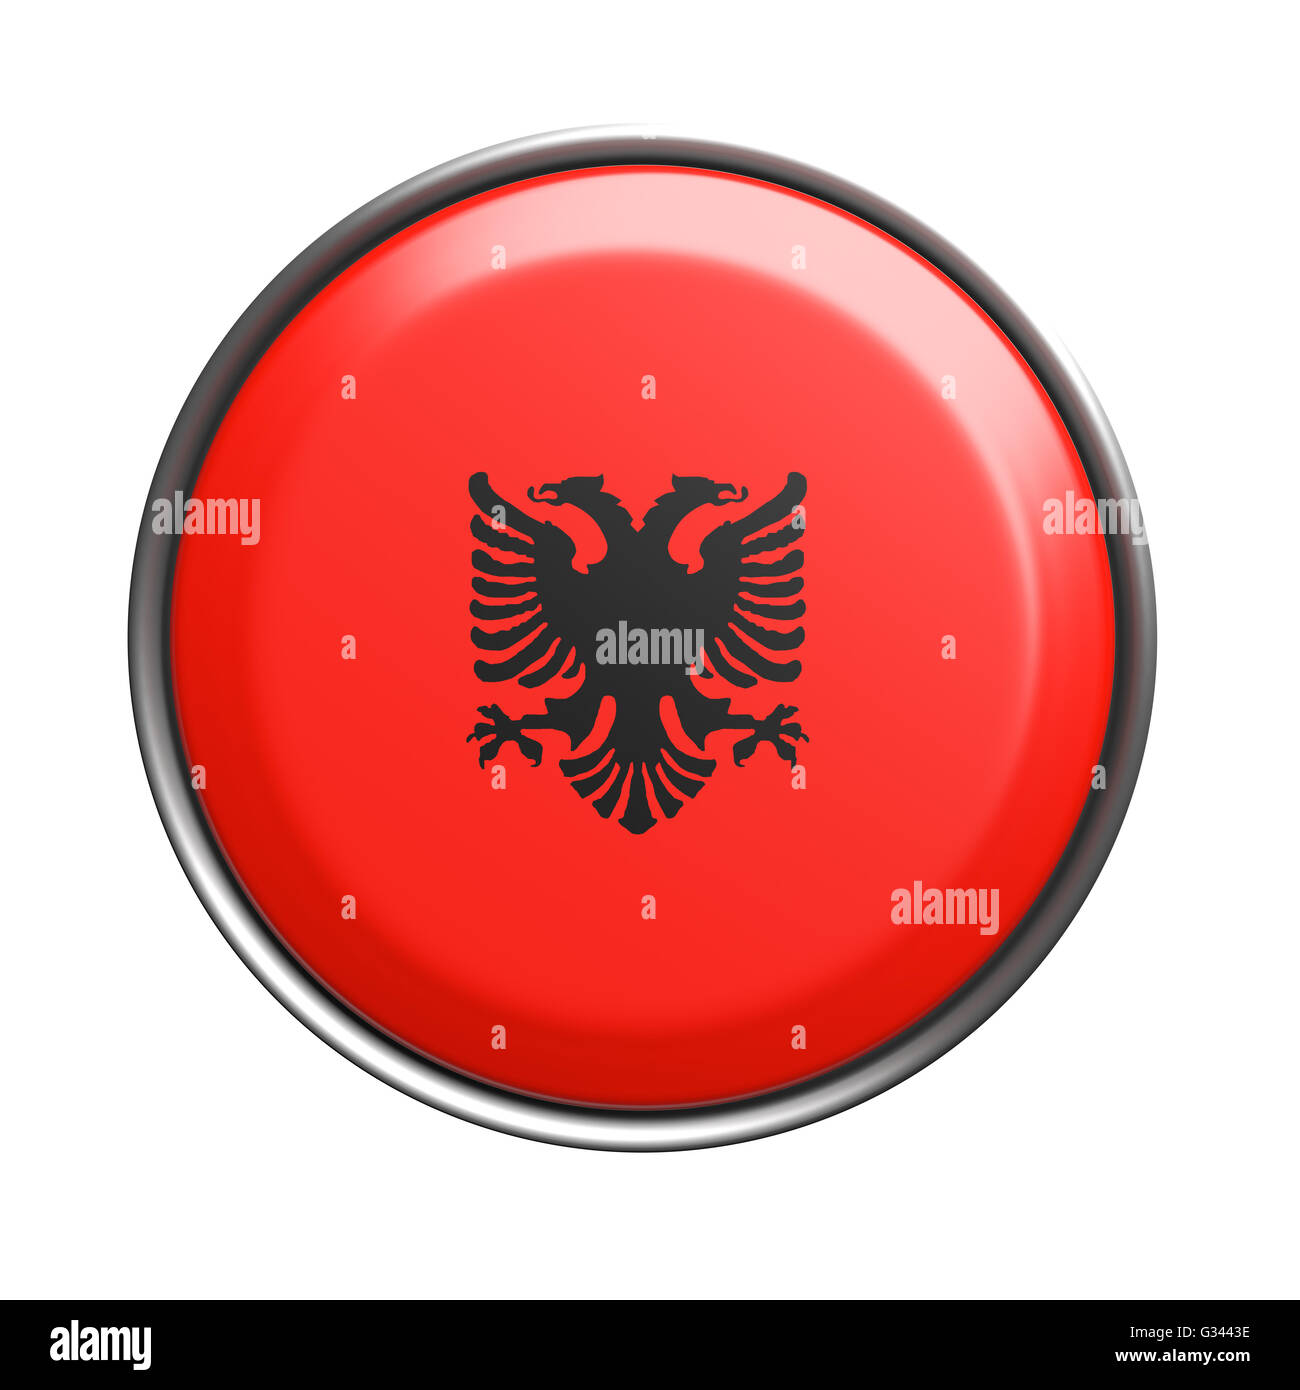 3d rendering of Albania button on white background. - Stock Image